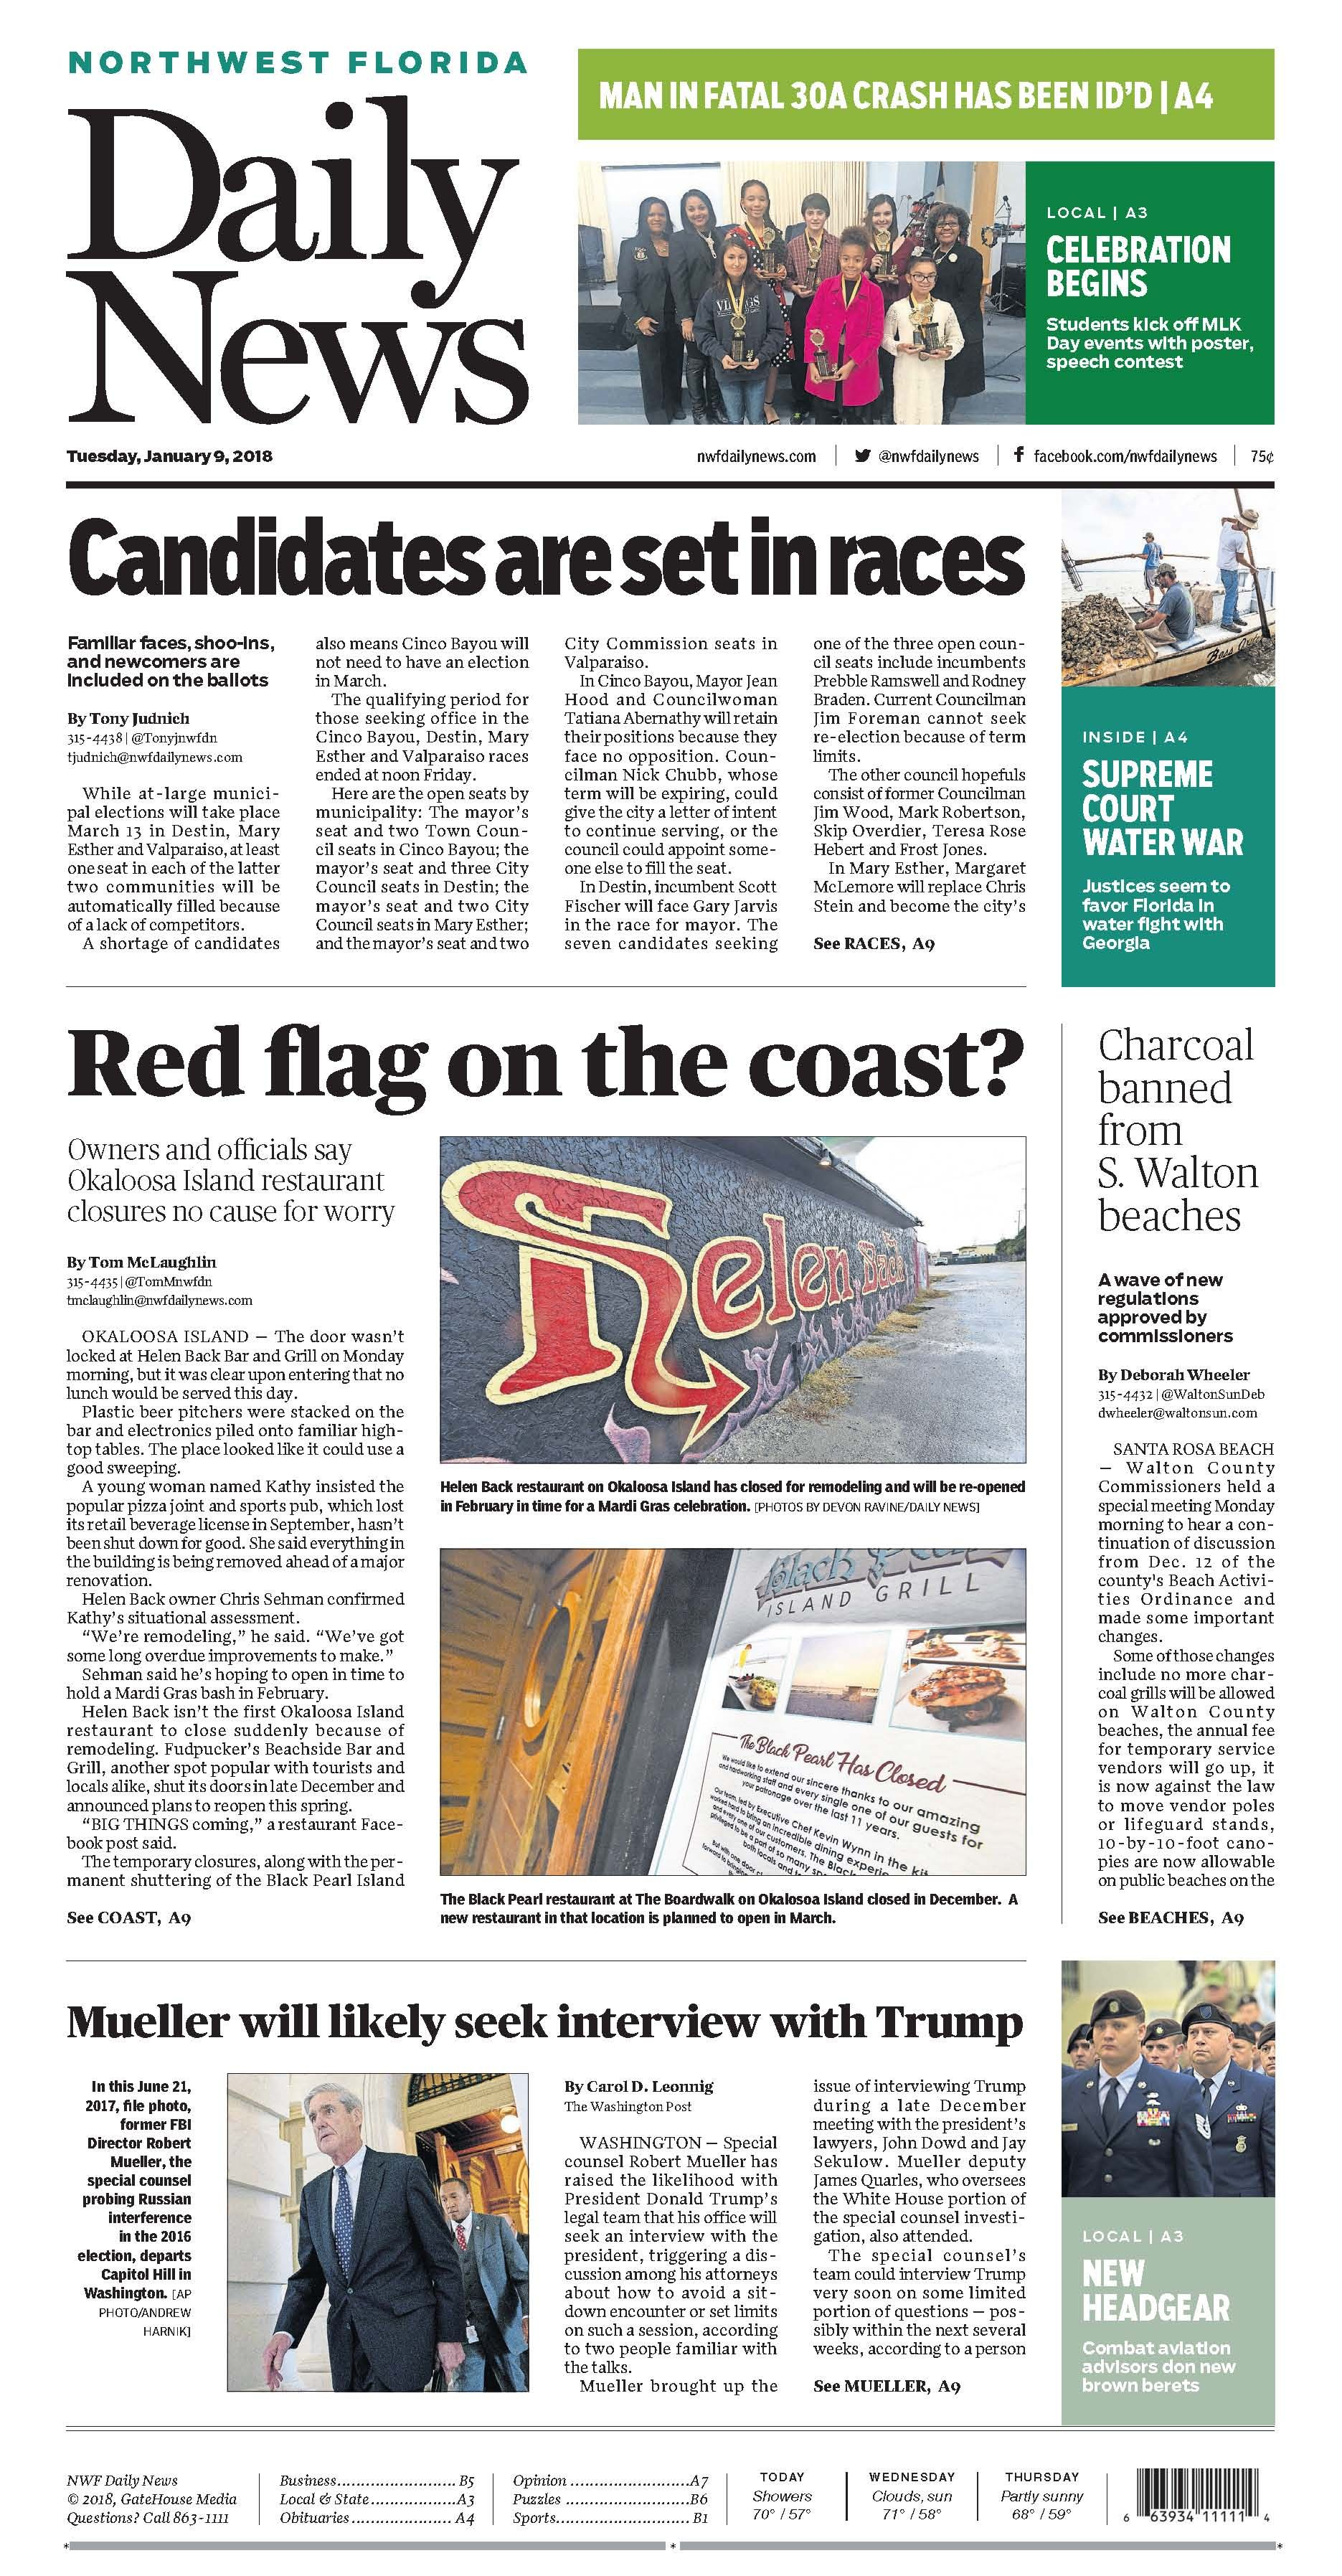 The Jan 9 2018 Cover Of The Northwest Florida Daily News Owners And Officials Say Okaloosa Island Restaurant Closures No Okaloosa Island North West Florida